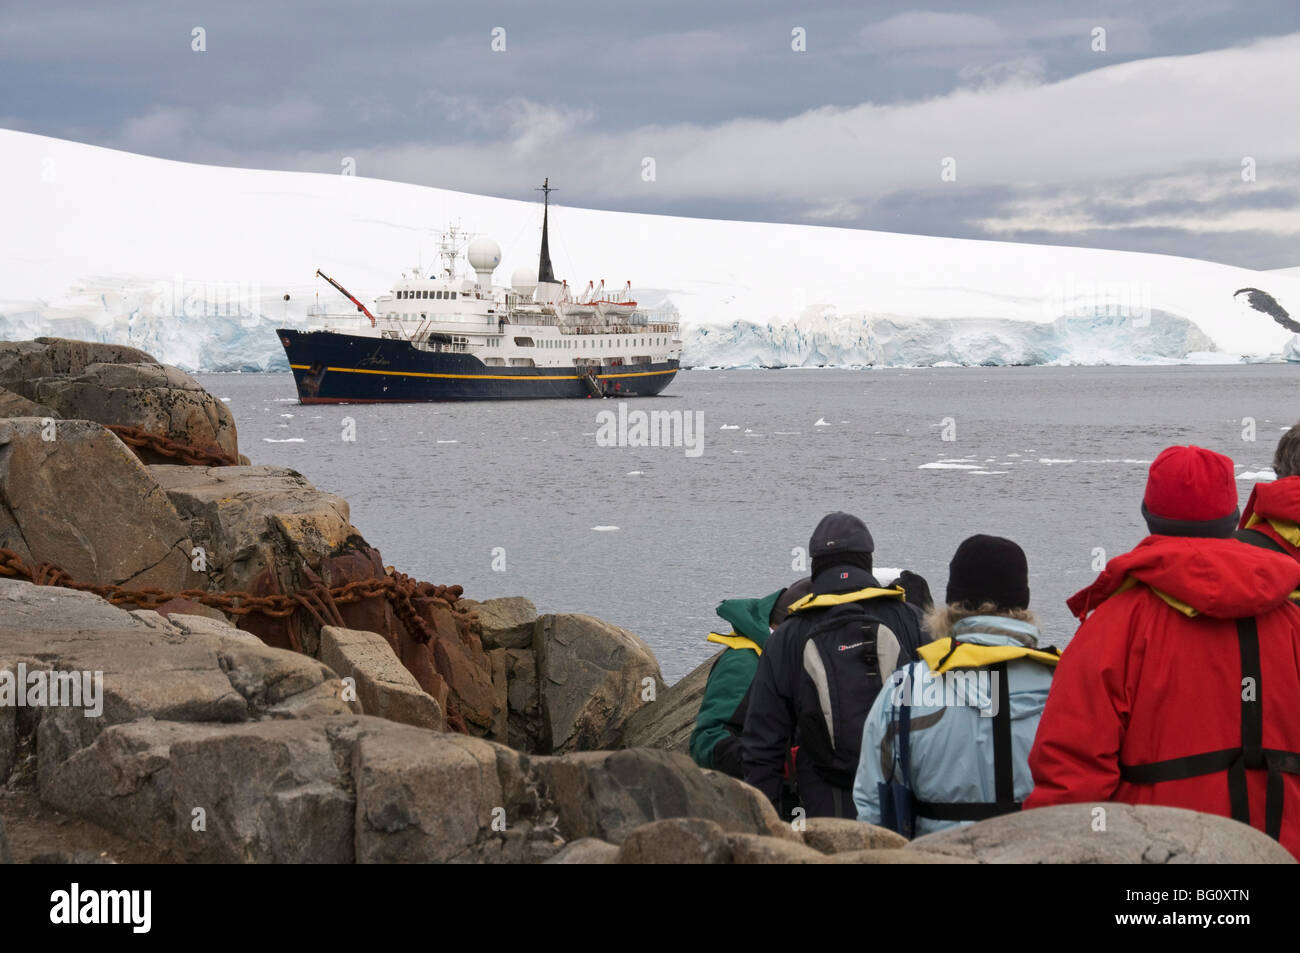 Tourist boat, Port Lockroy, Antarctic Peninsula, Antarctica, Polar Regions Stock Photo